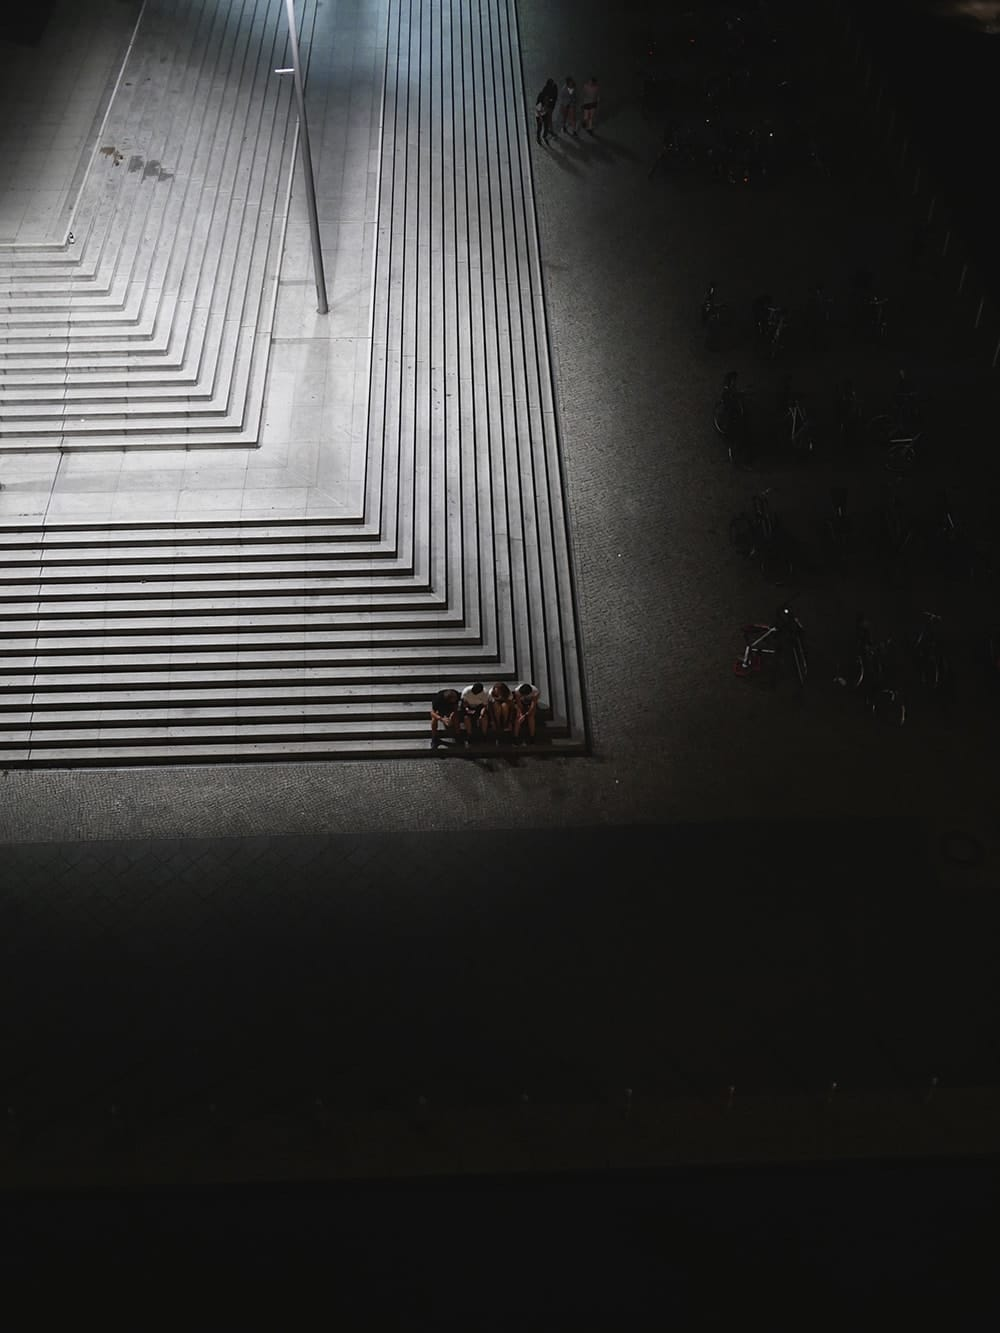 A group of young people sitting together on stairs in warm evening. Berlin